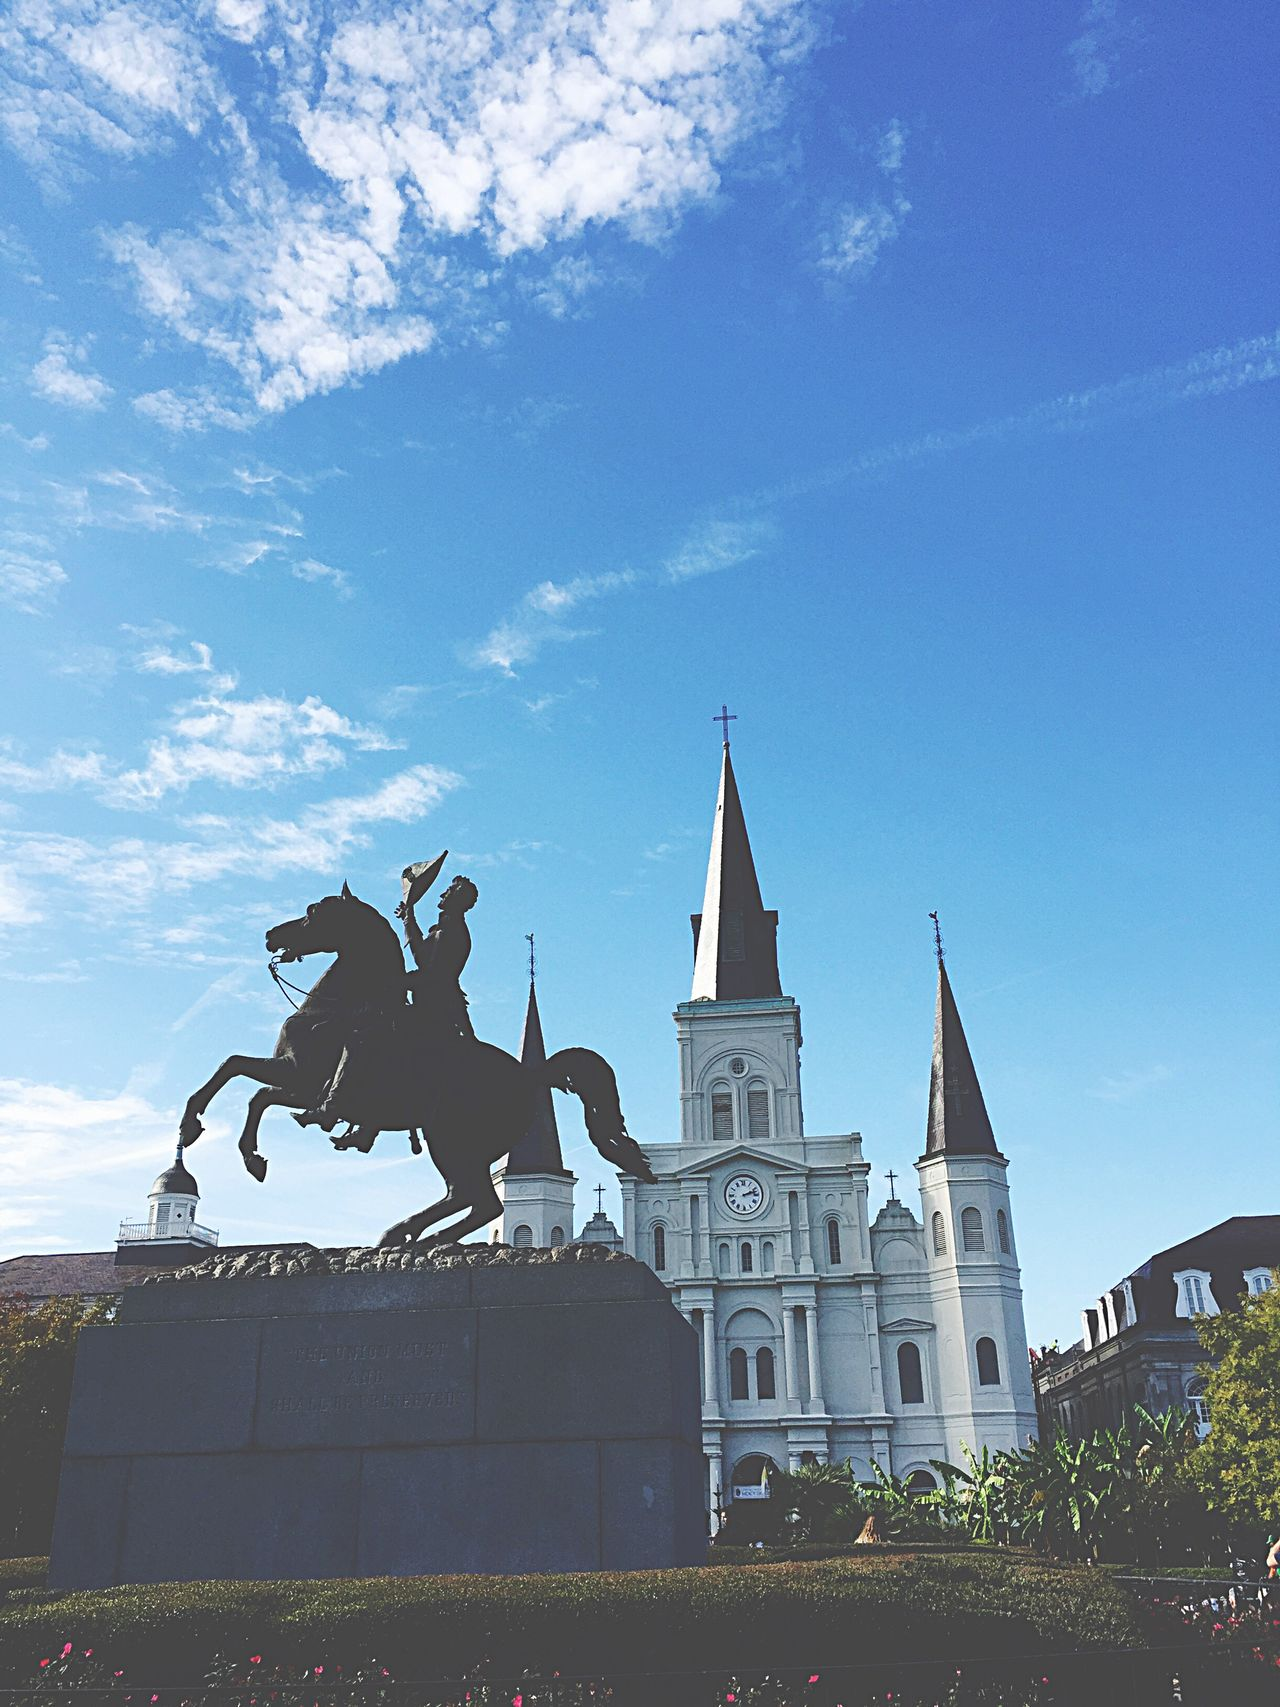 Architecture Building Exterior Built Structure City Statue Travel Destinations Sky Sculpture Outdoors No People Place Of Worship Day Dome New Orleans Life New Orleans EyeEm New Orleans, LA New Orleans Jackson Square City St. Louis Cathedral